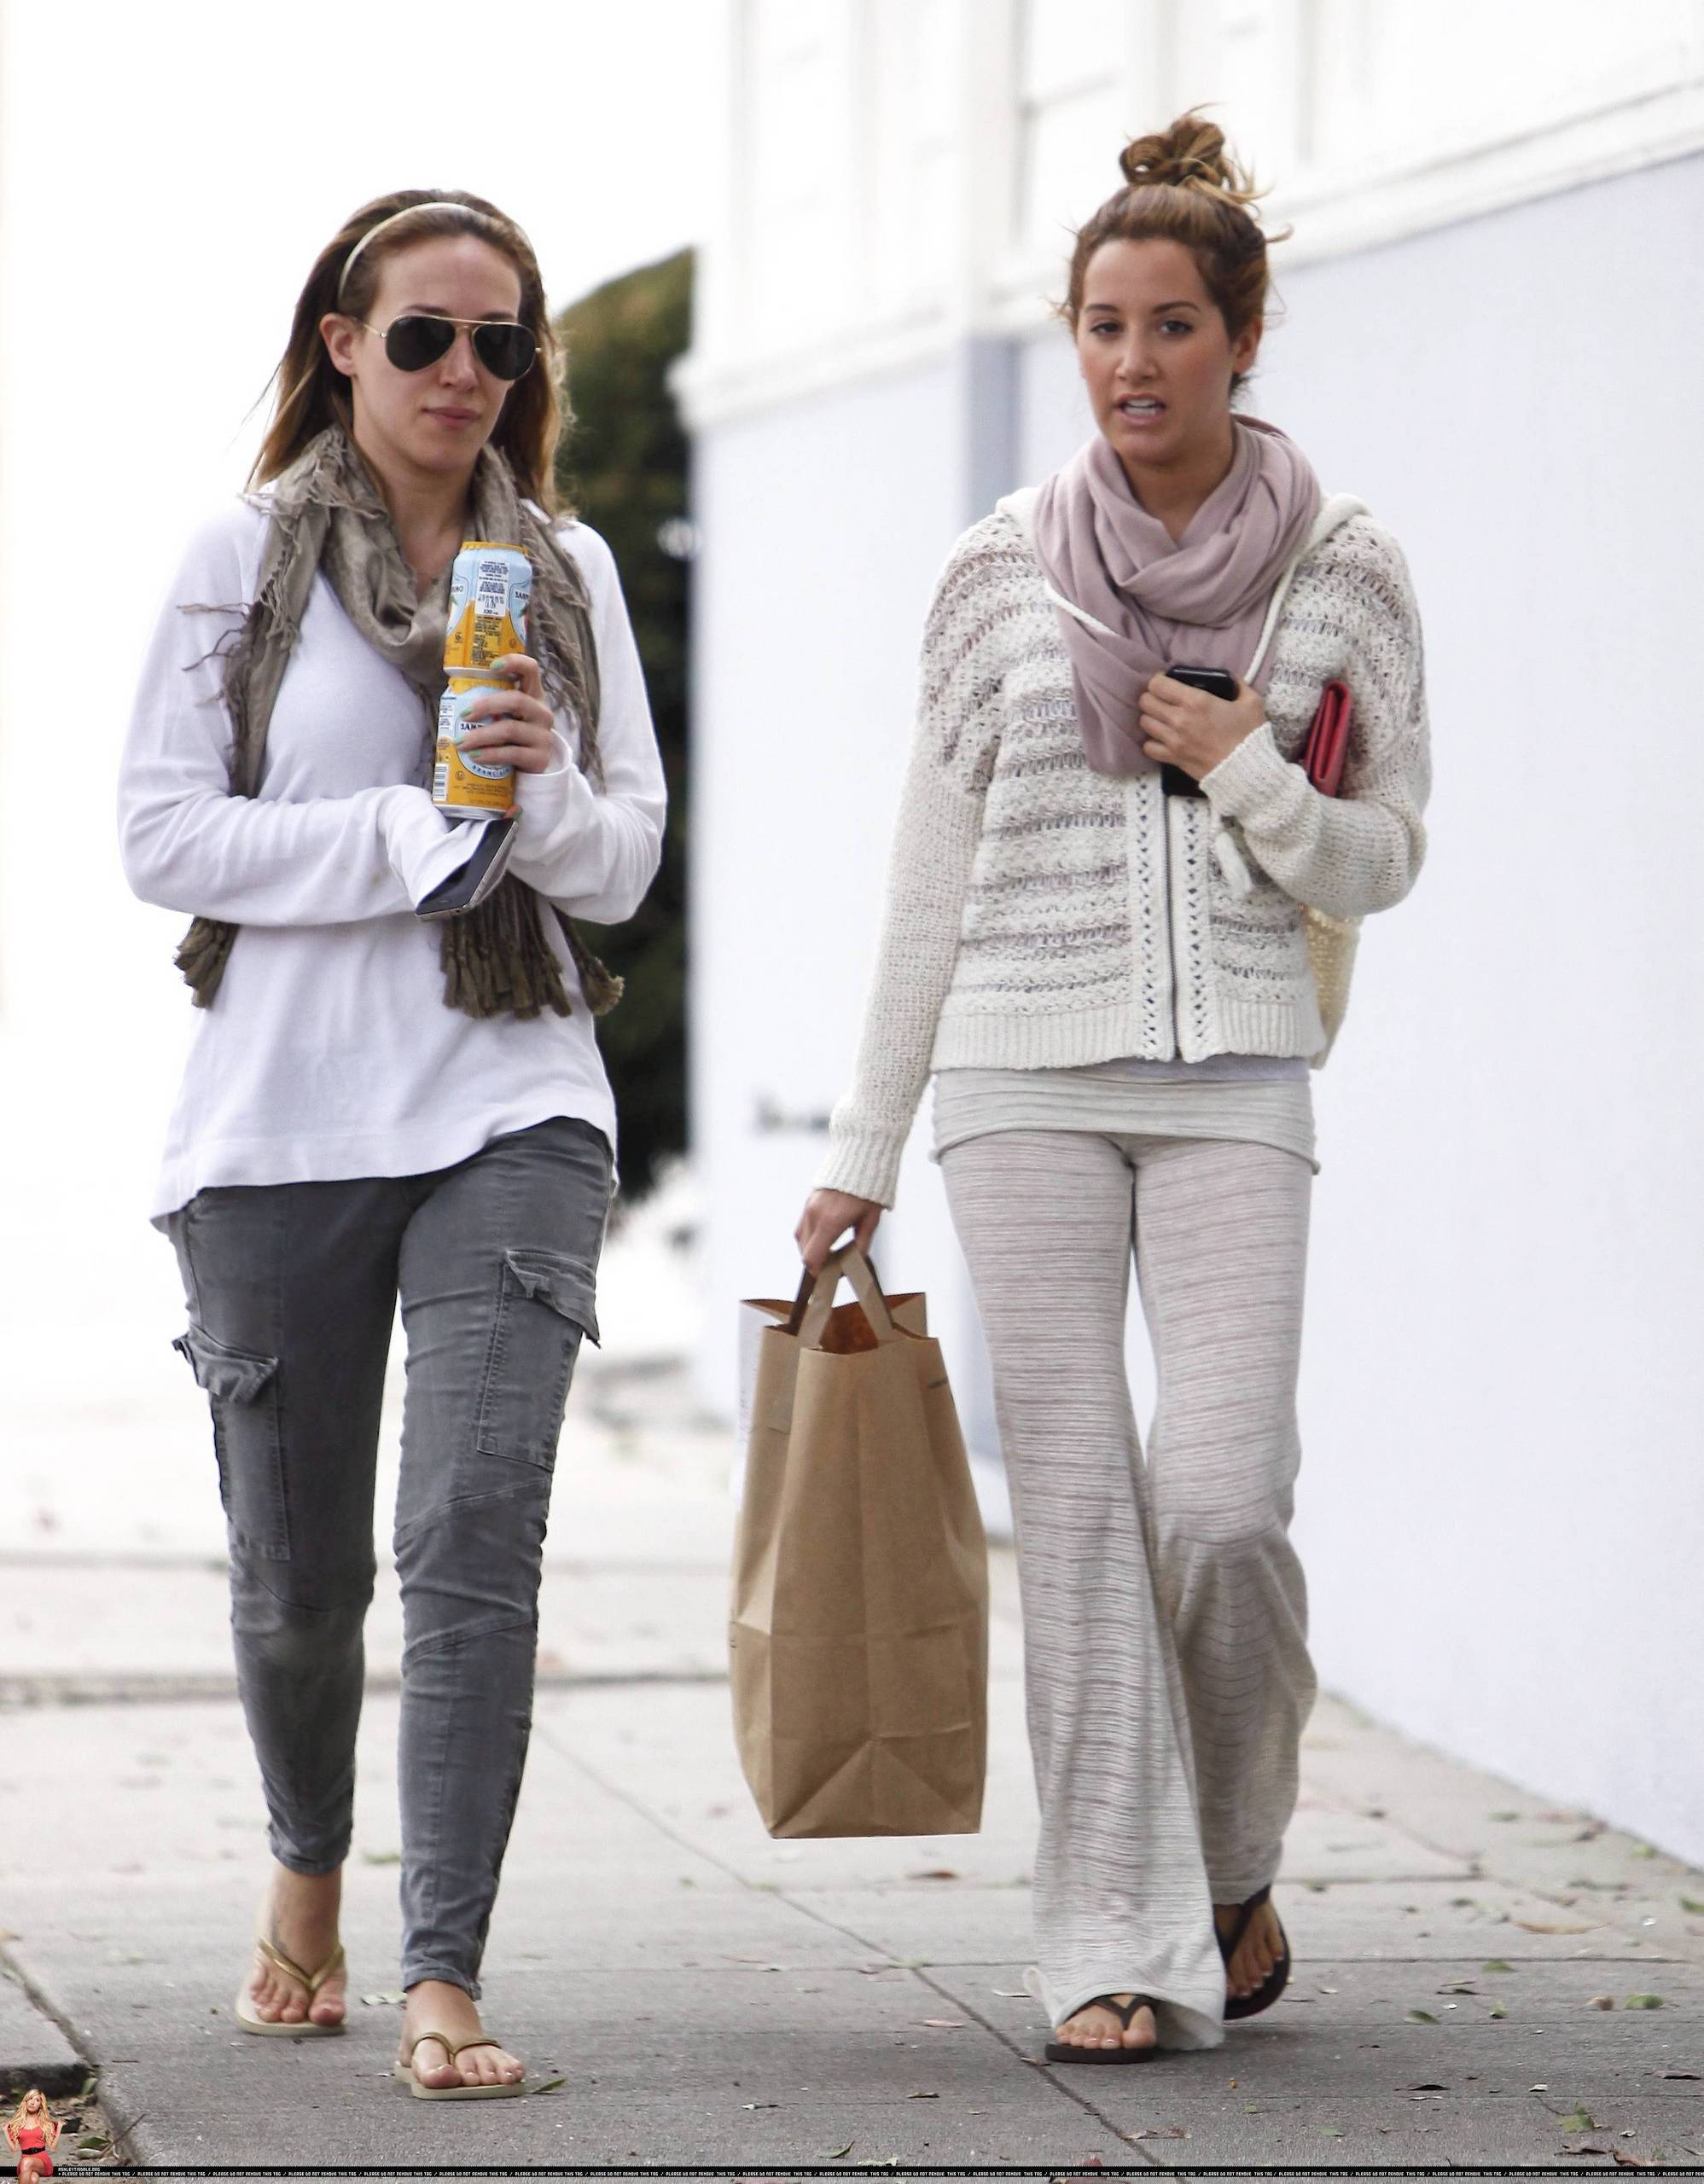 Ashely Get takeout from Sweetsalt with Haylie Duff 21 April 2011 ashley tisdale 21276931 1997 2560 Colin Farrell admitted in a recent interview that he danced nude for Salma ...